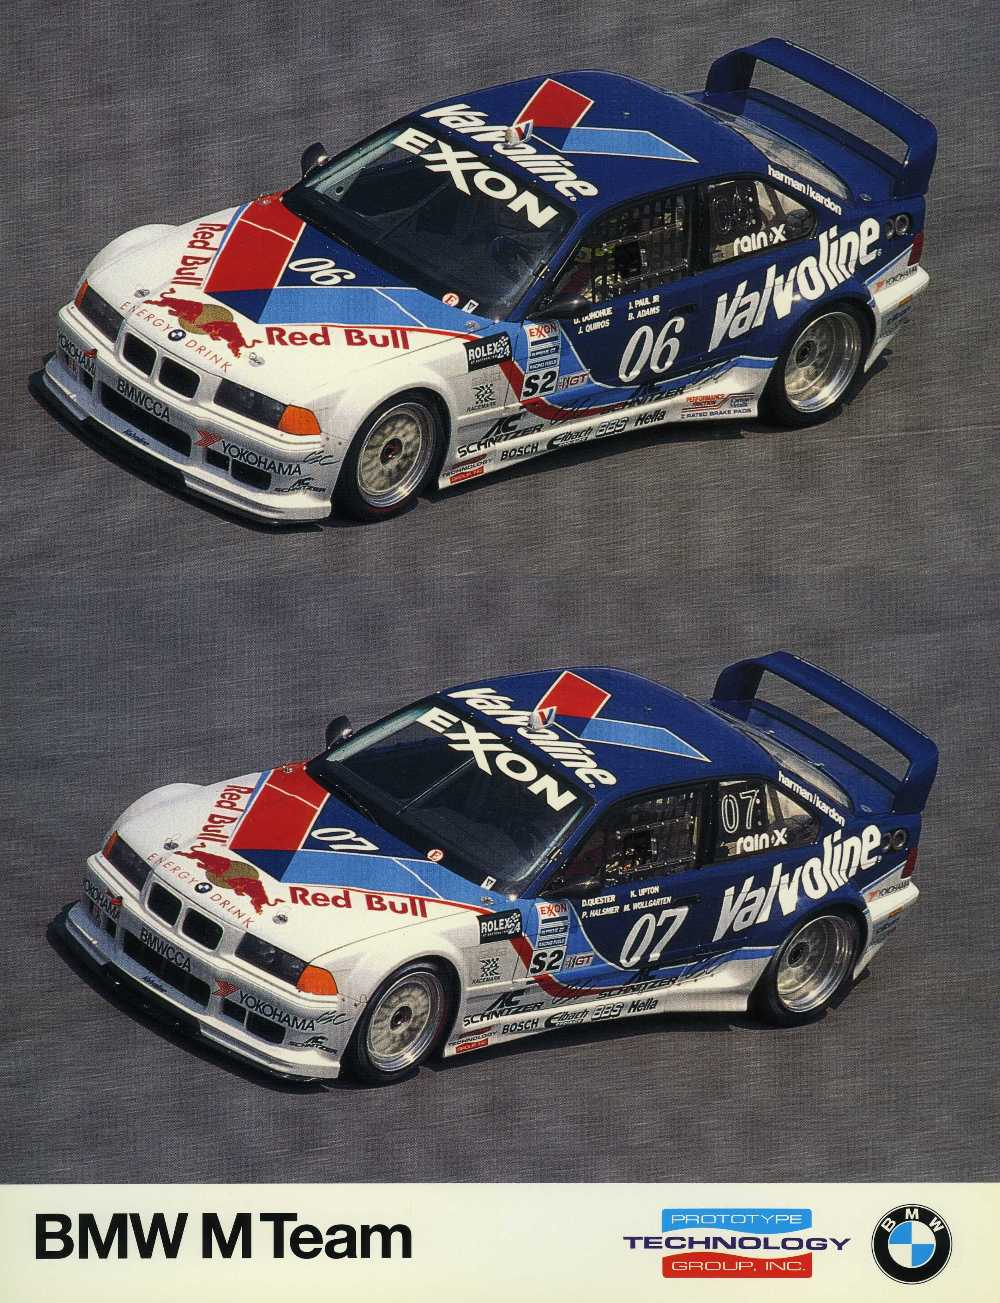 Signature Card - 1996 BMW M Team Prototype Technology Group (2 cars)